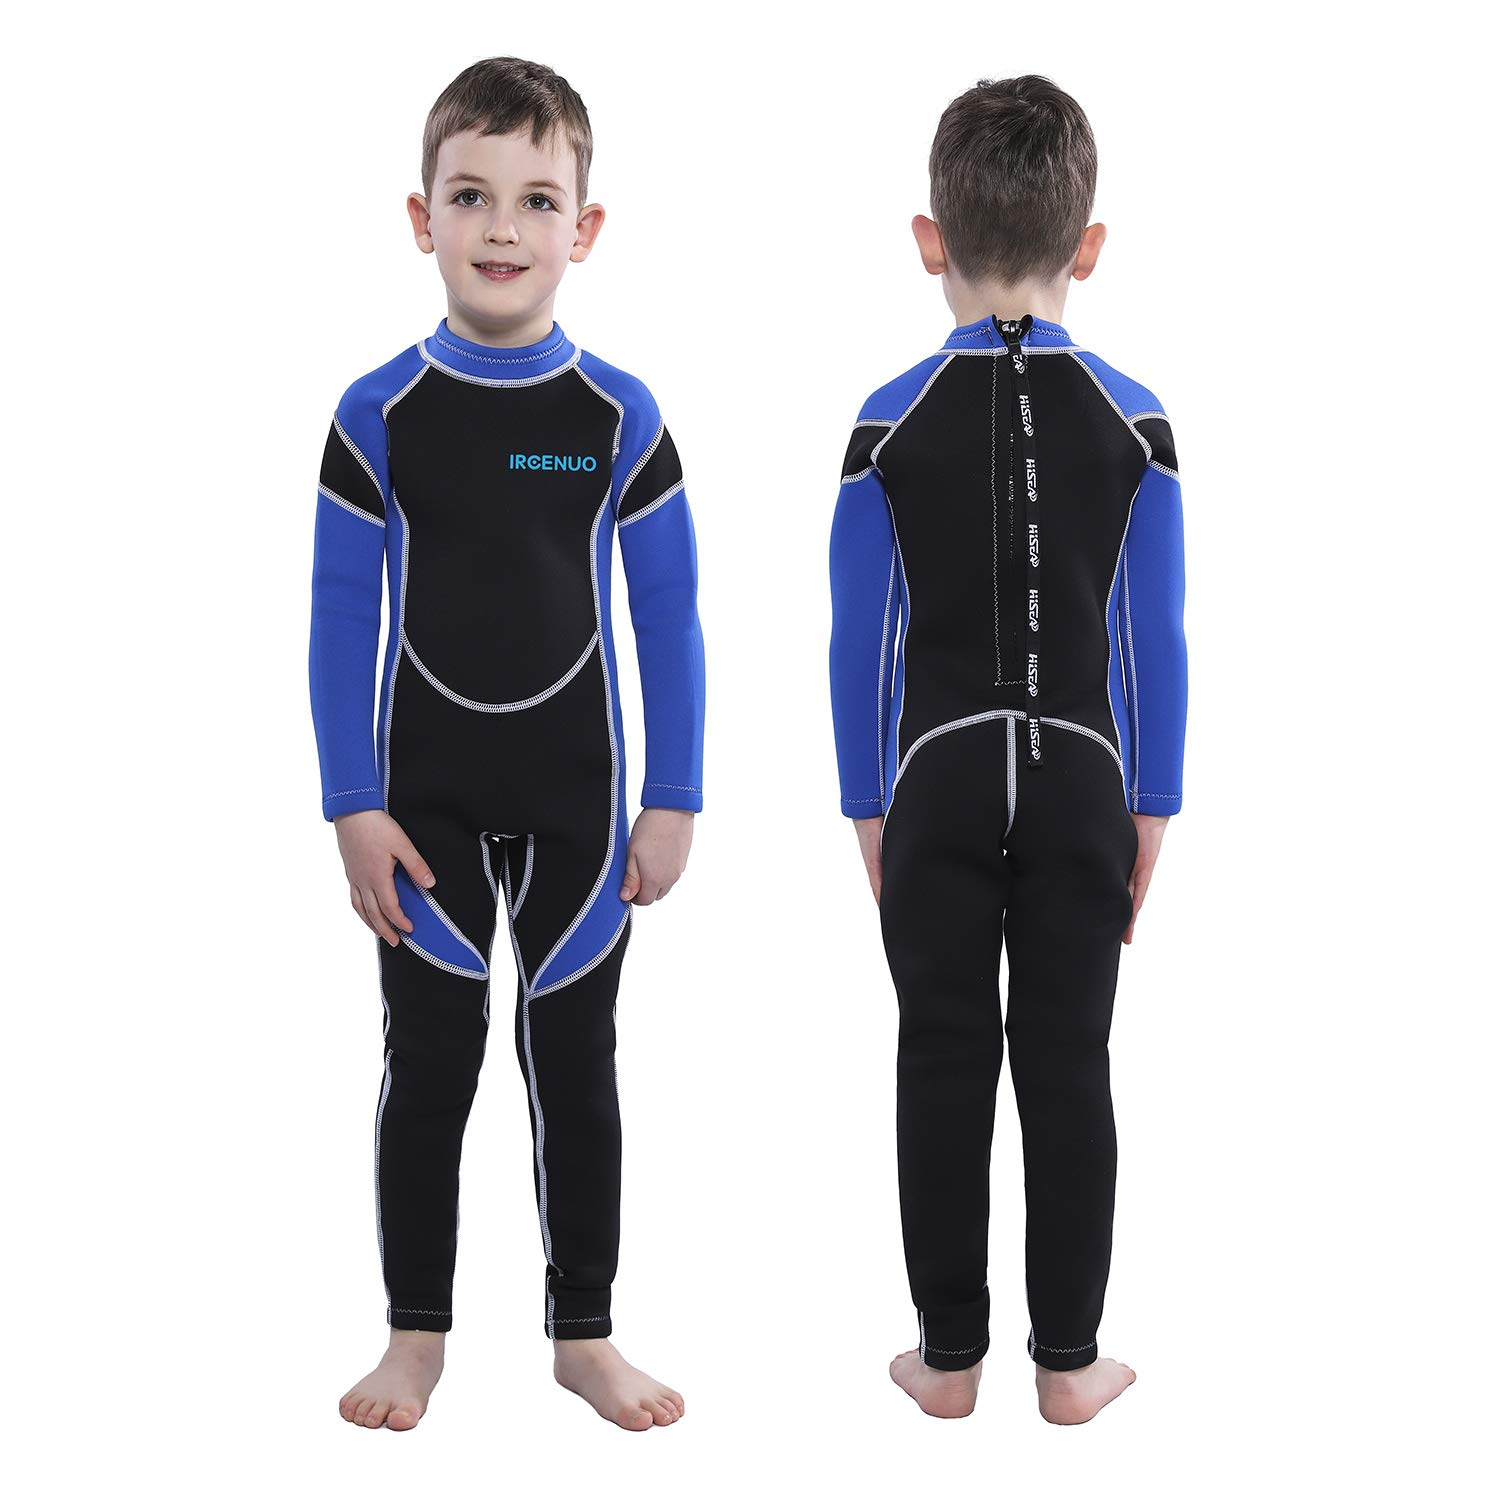 IREENUO Kids Wetsuit Neoprene 2.5mm Thick Long Sleeve One Piece UV Protection Sun Protection Sunsuit Wetsuit for Girls Boys by IREENUO